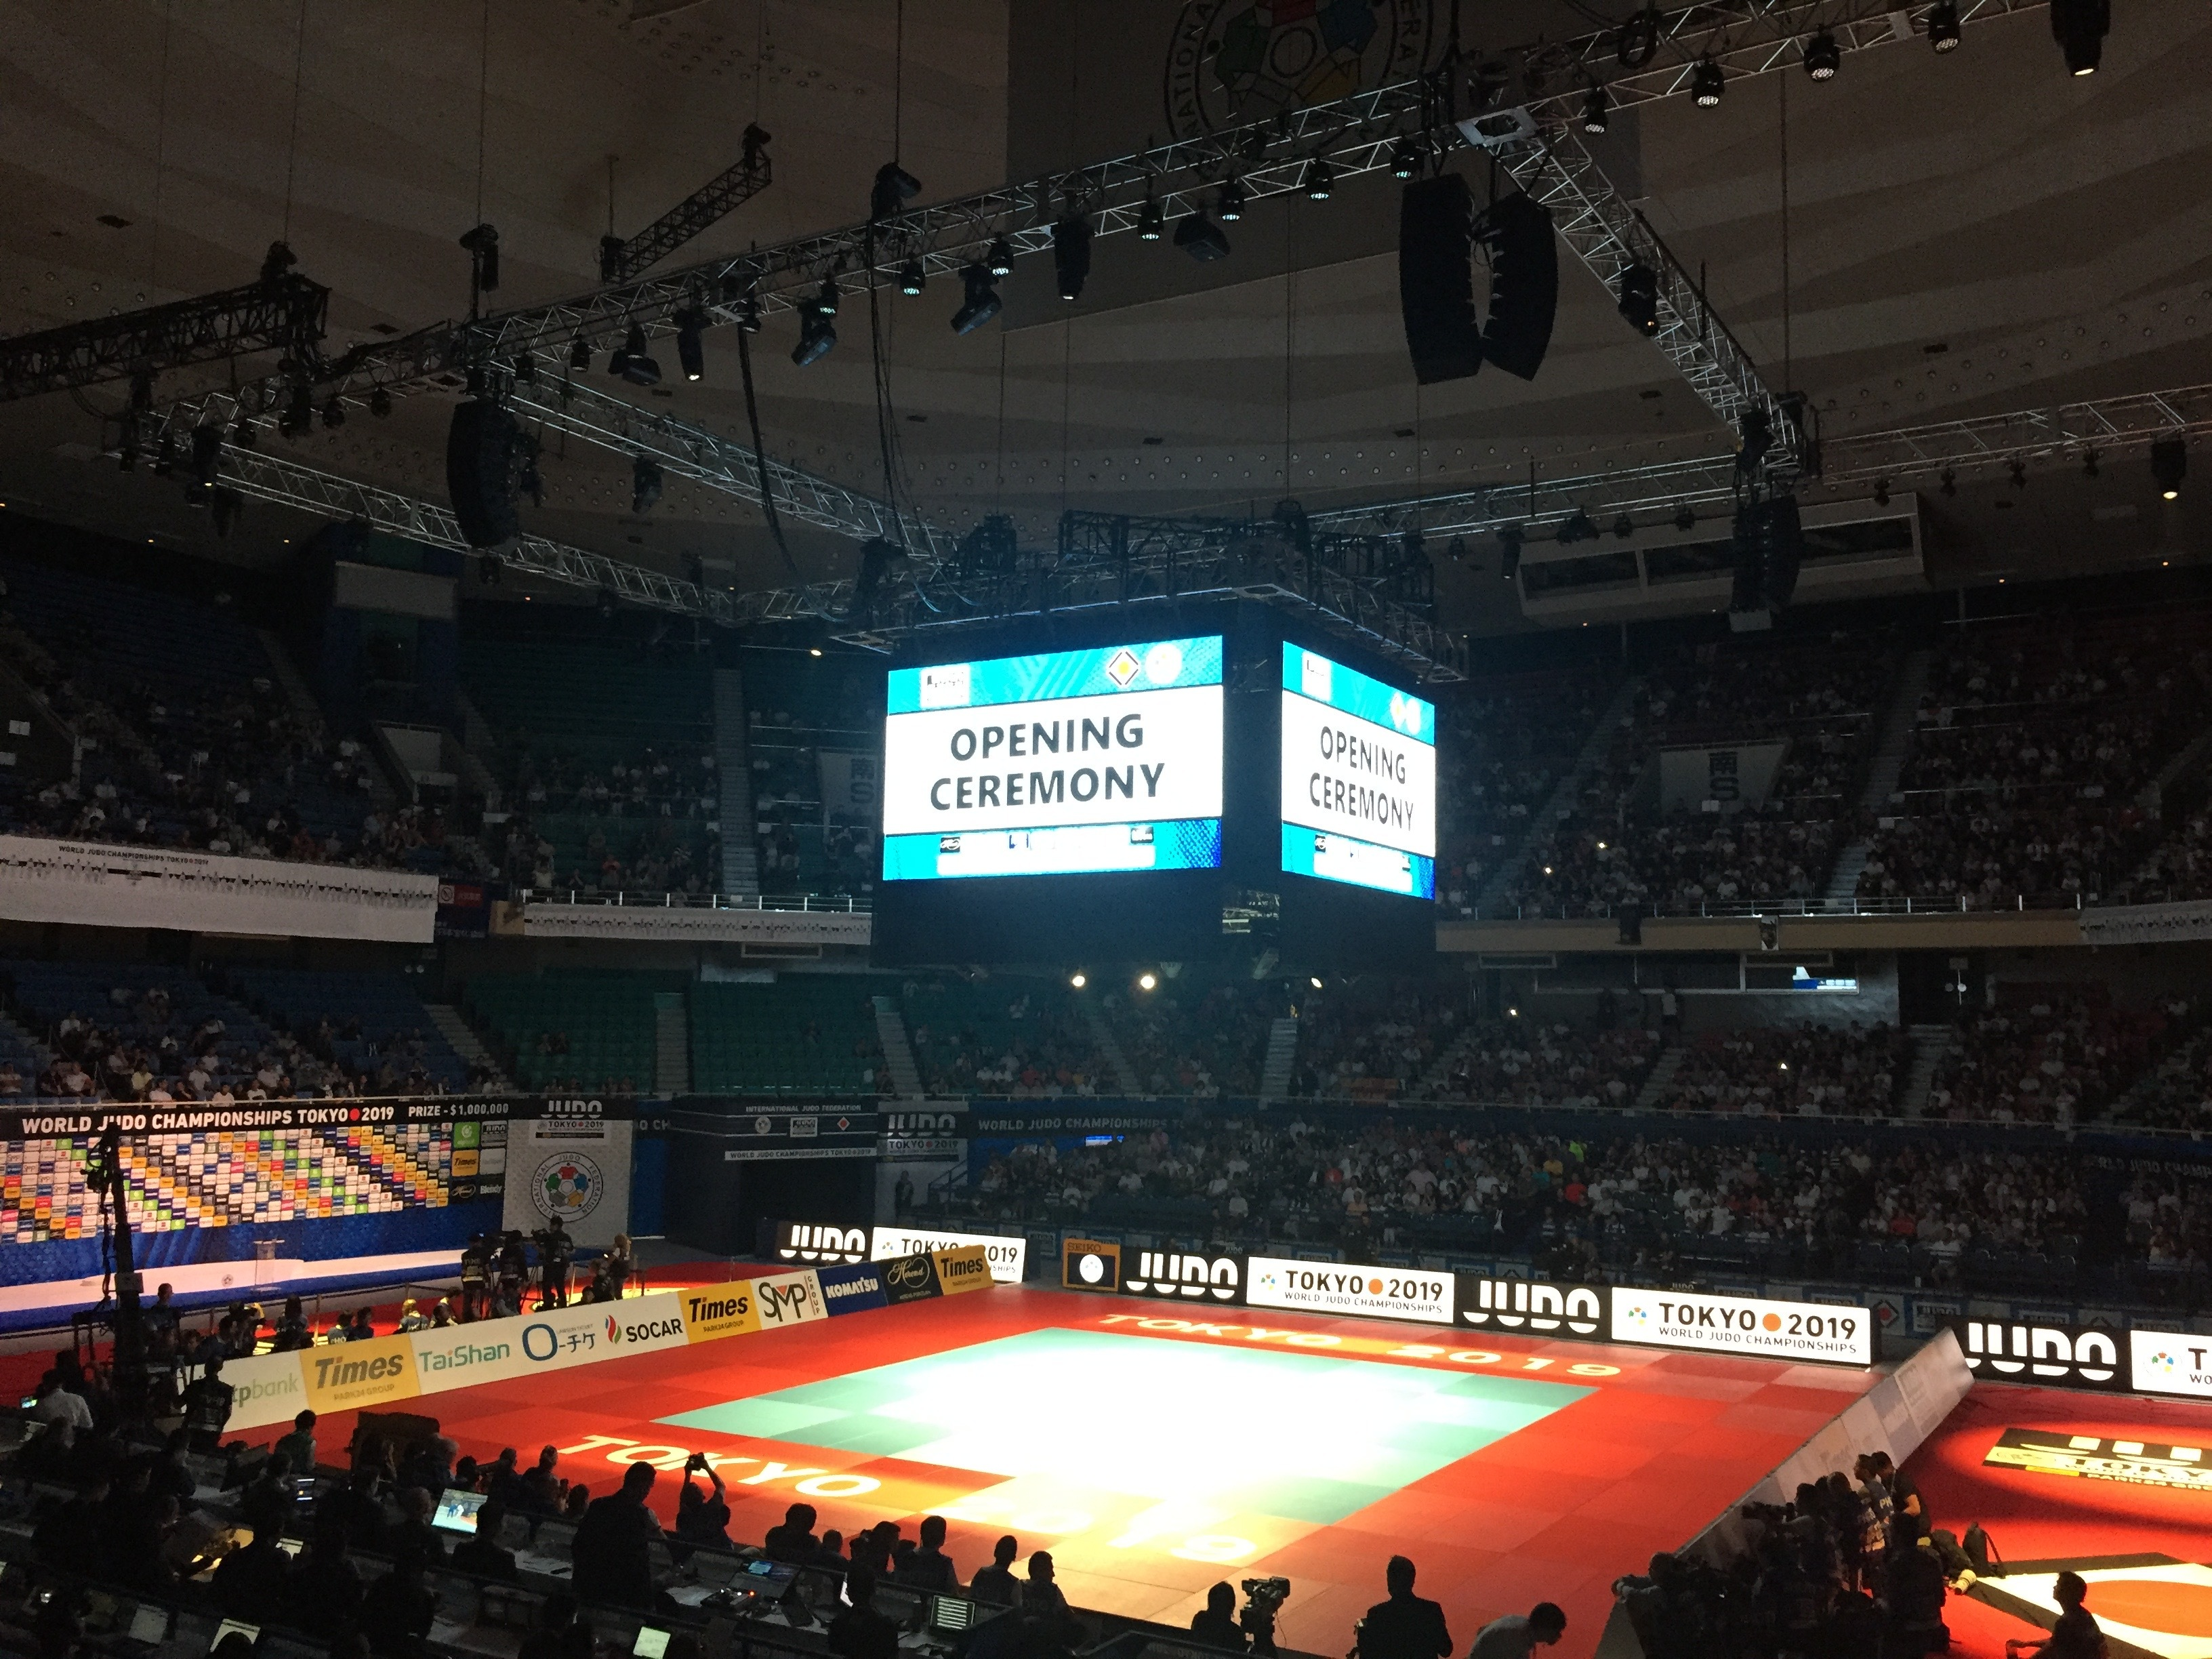 Judo_Tokyo_World_Championships_opening_ceremony_2019_judoforpeace_moreon